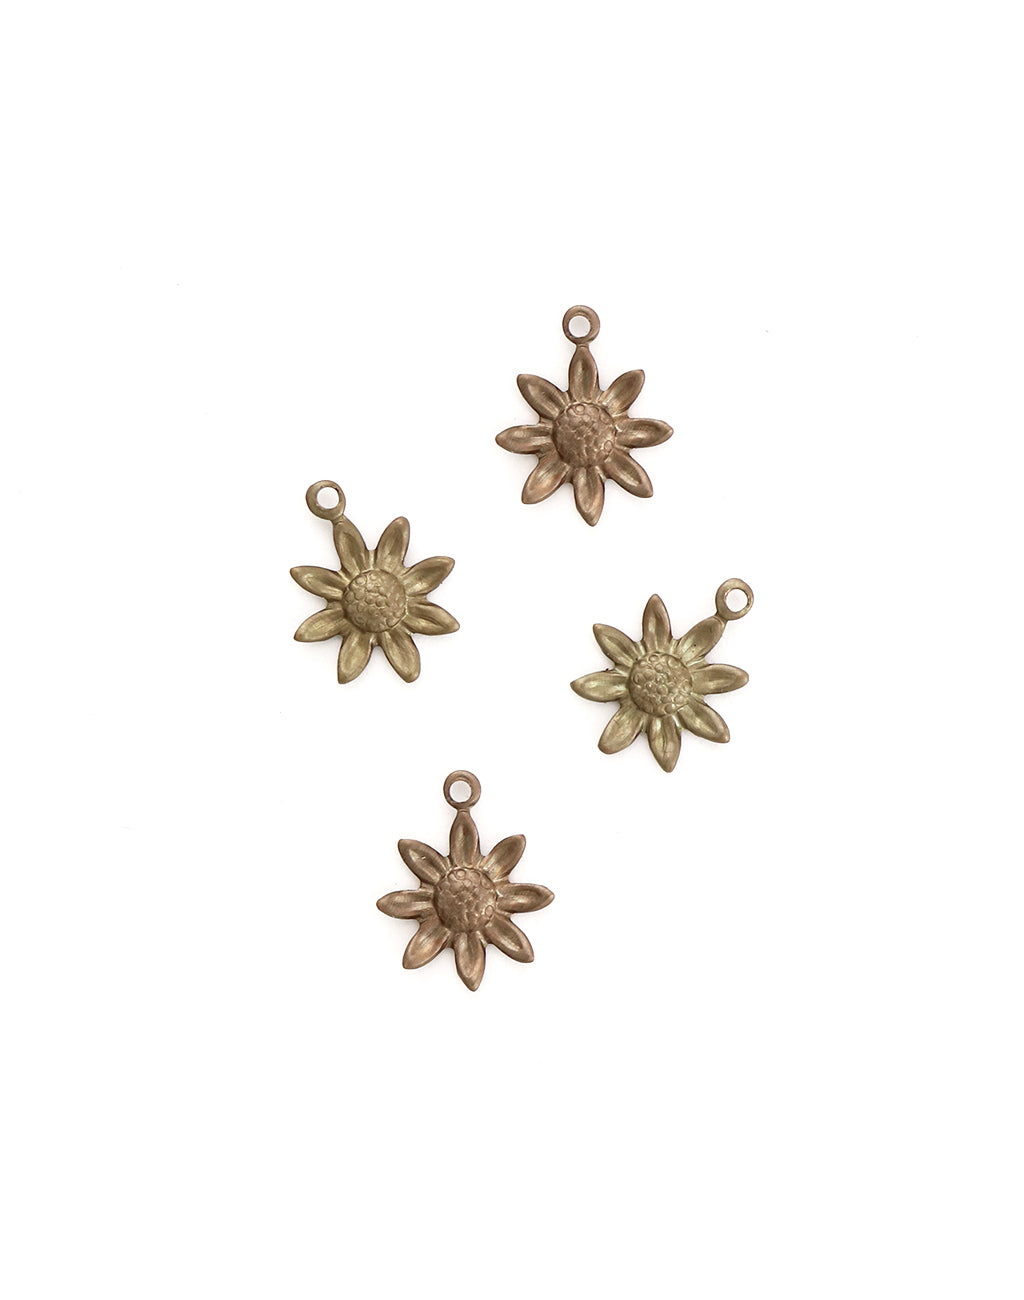 Teensie Sunflower, 11mm, (4pcs)